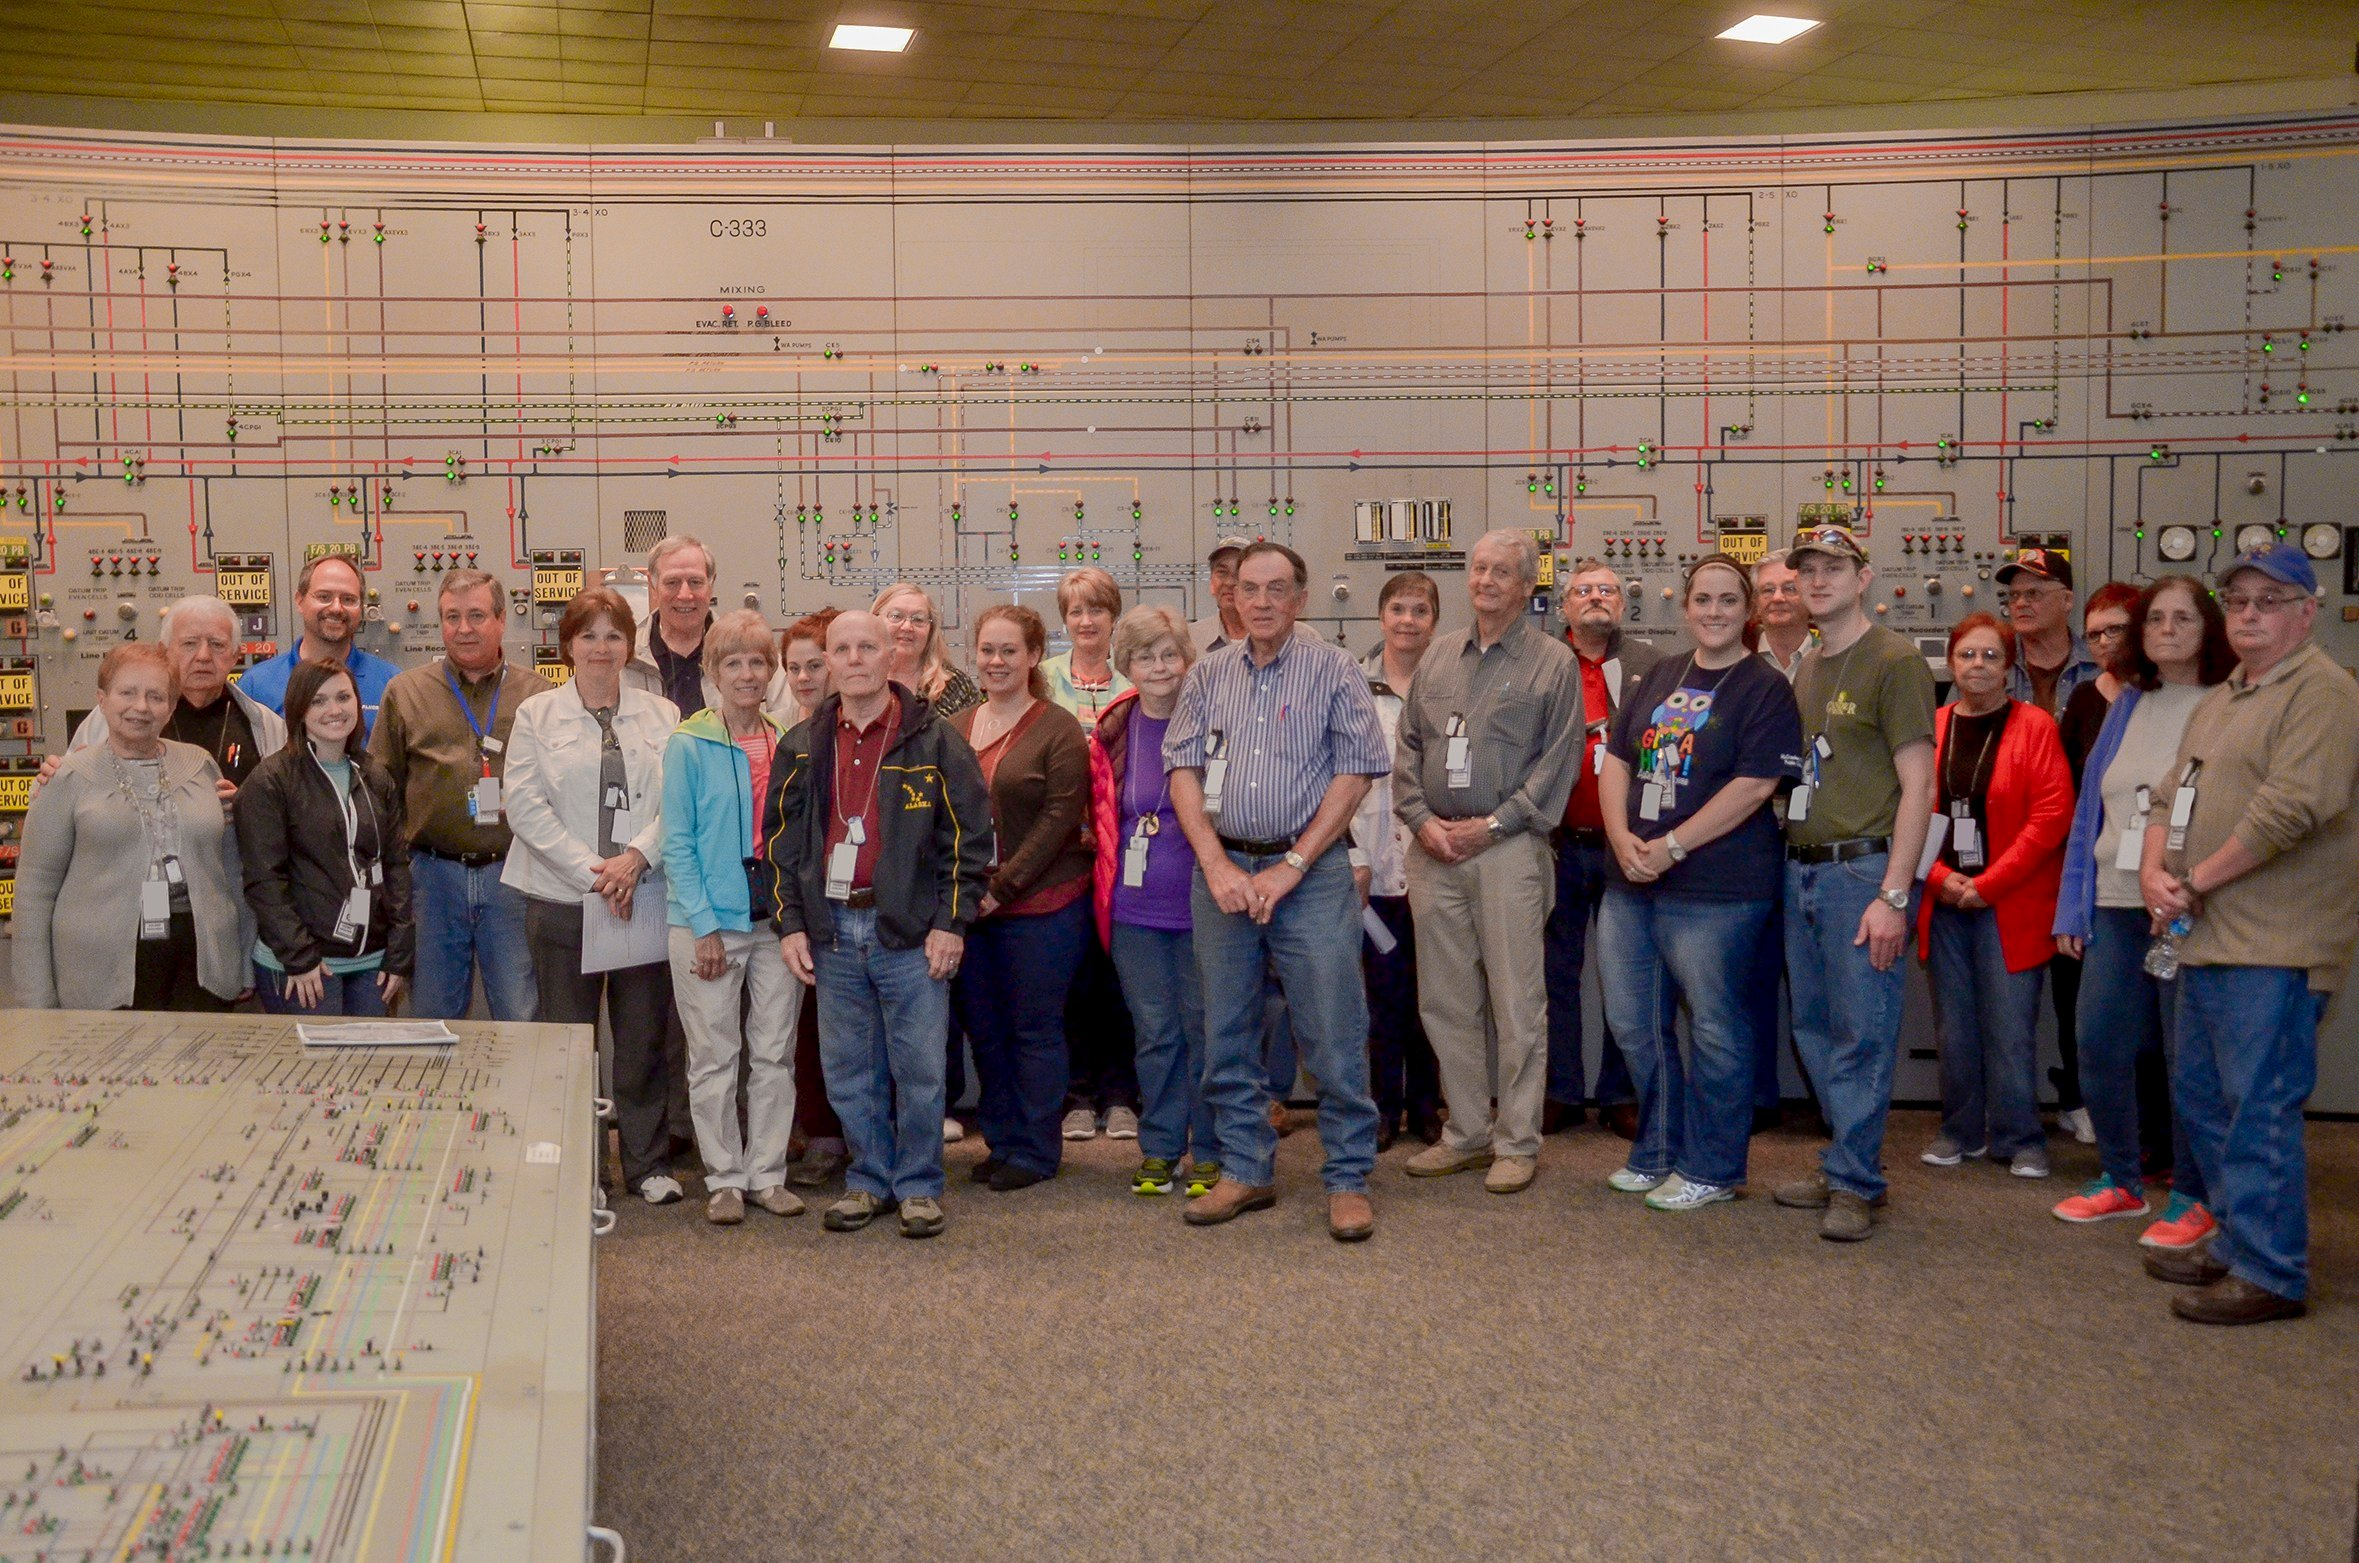 Tour participants stopped for a picture in the C-300 Central Control Facility at the Paducah DOE site during the inaugural community tour on April 23, 2016. (Contributed photo)